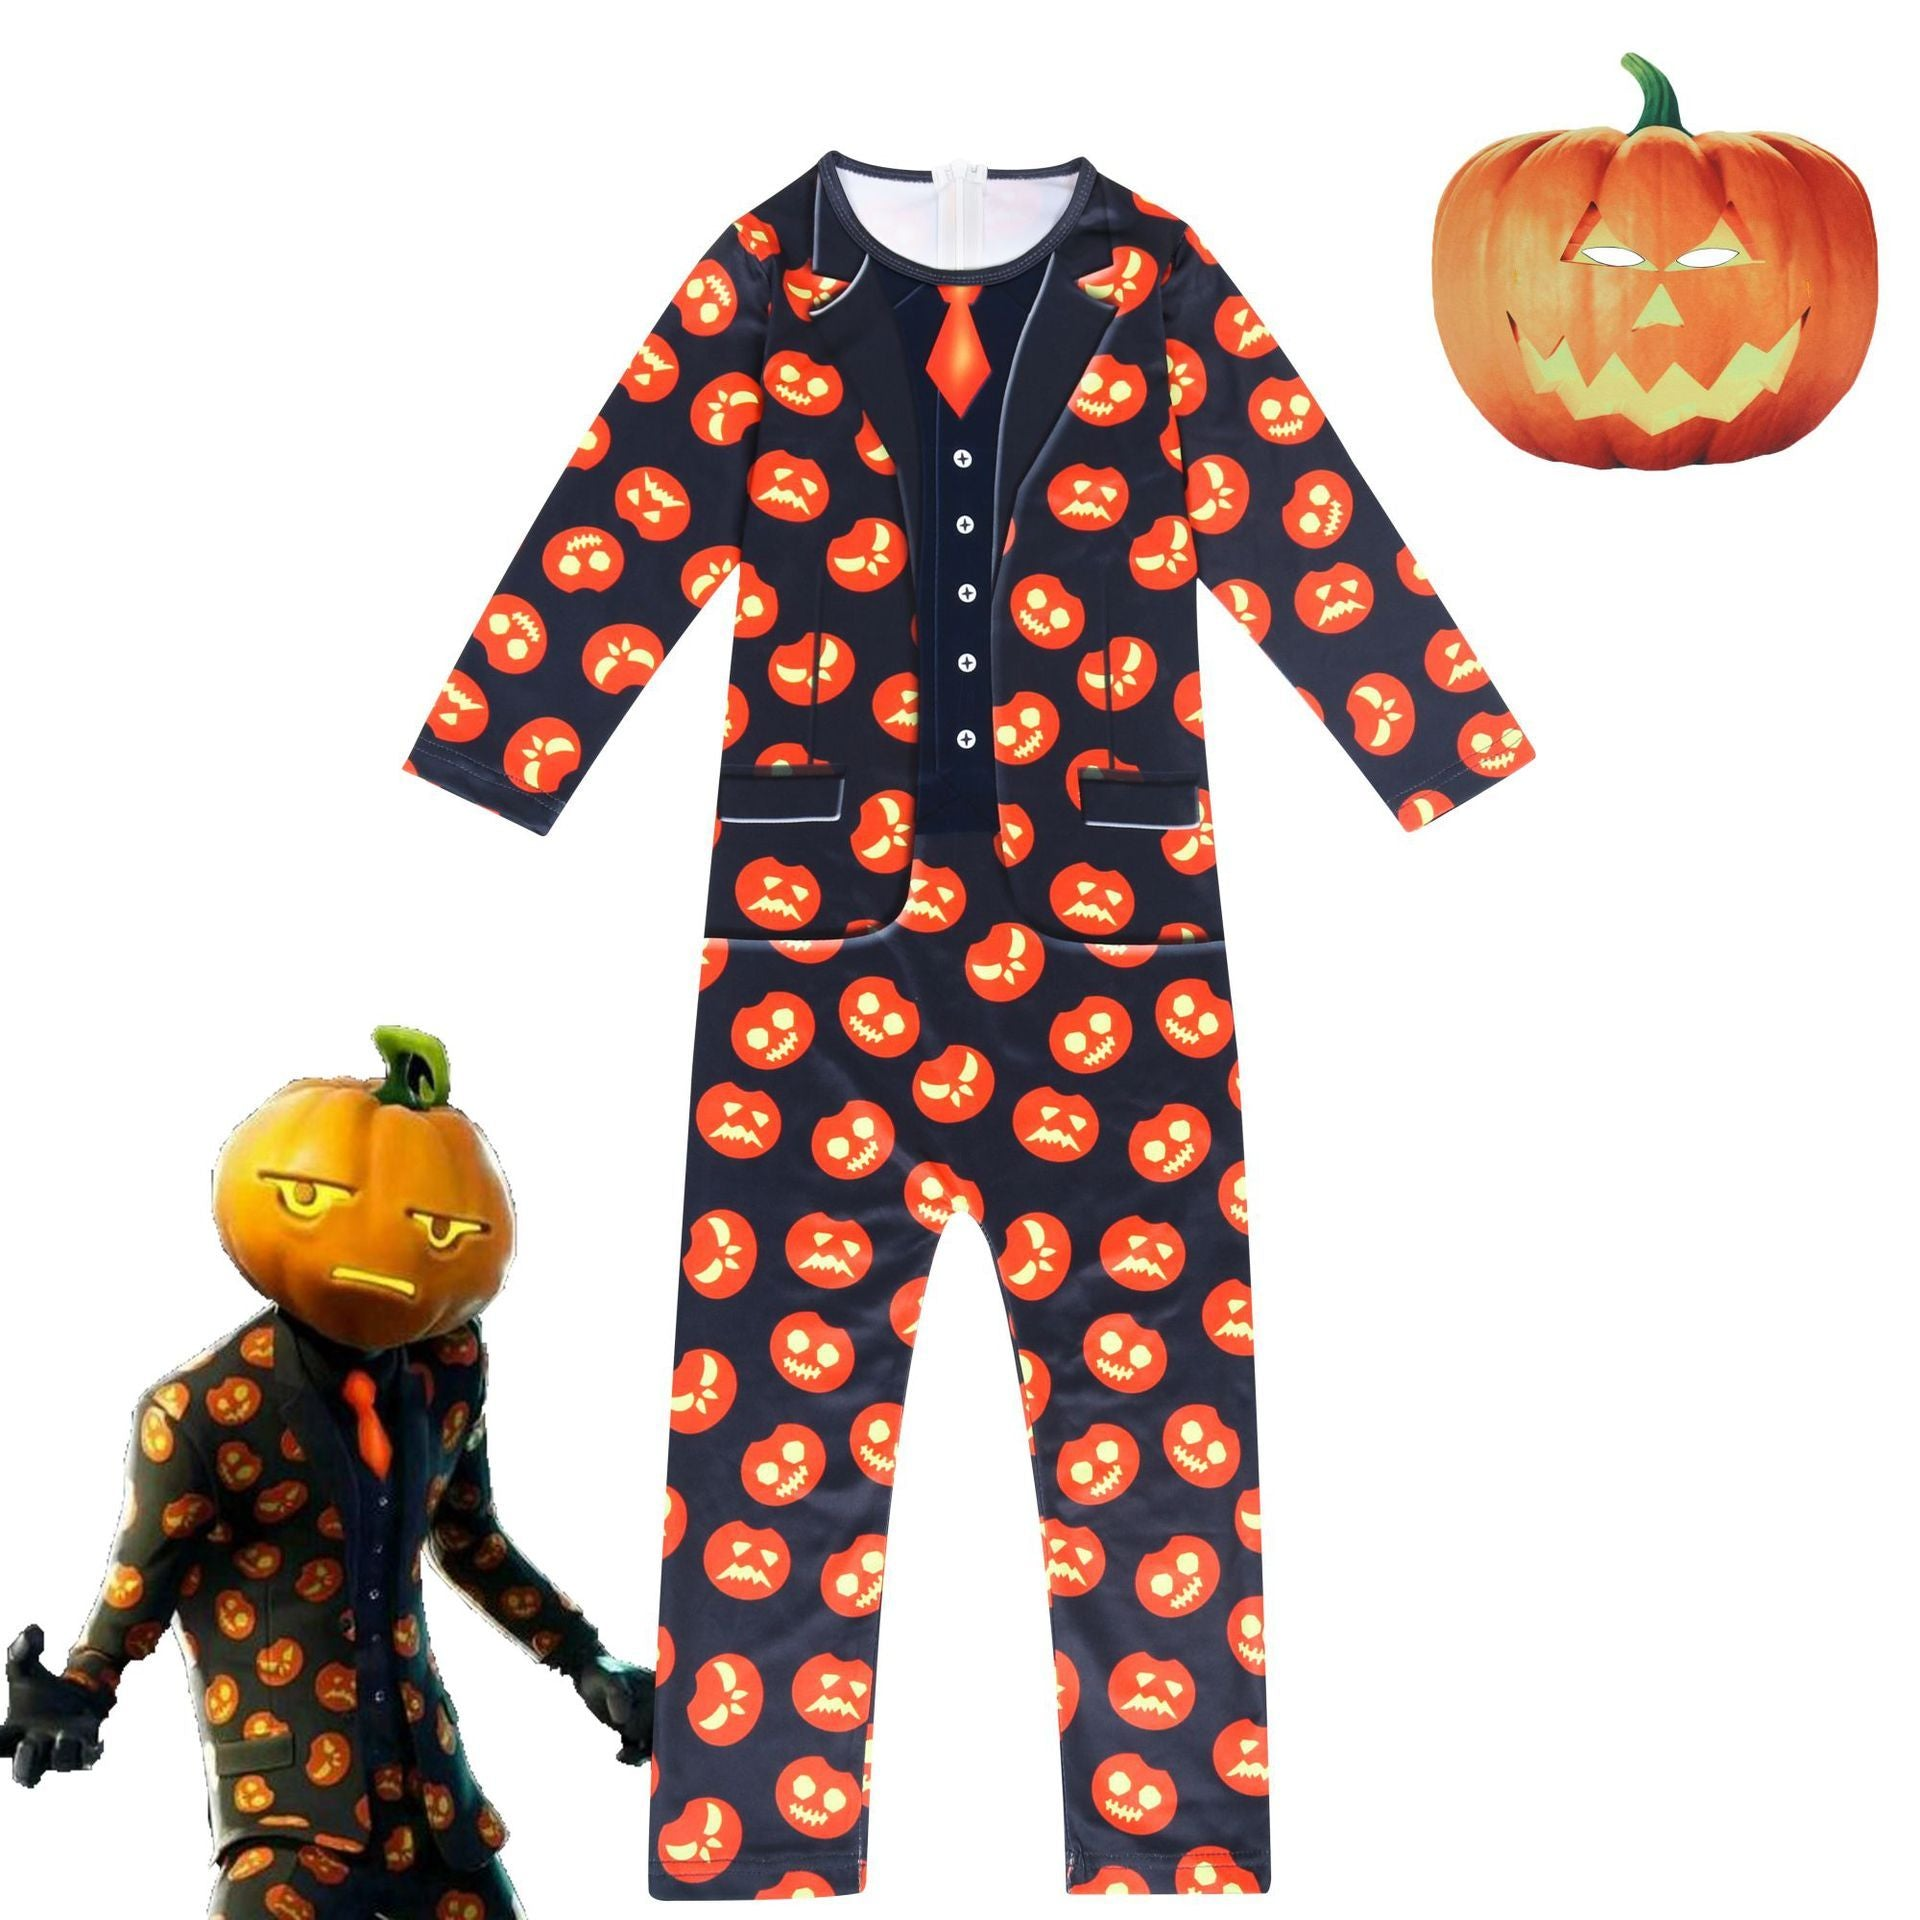 2019 Kids Jack Gourdon Jumpsuit Fortnite Pumpkin Costume Halloween Cosplay